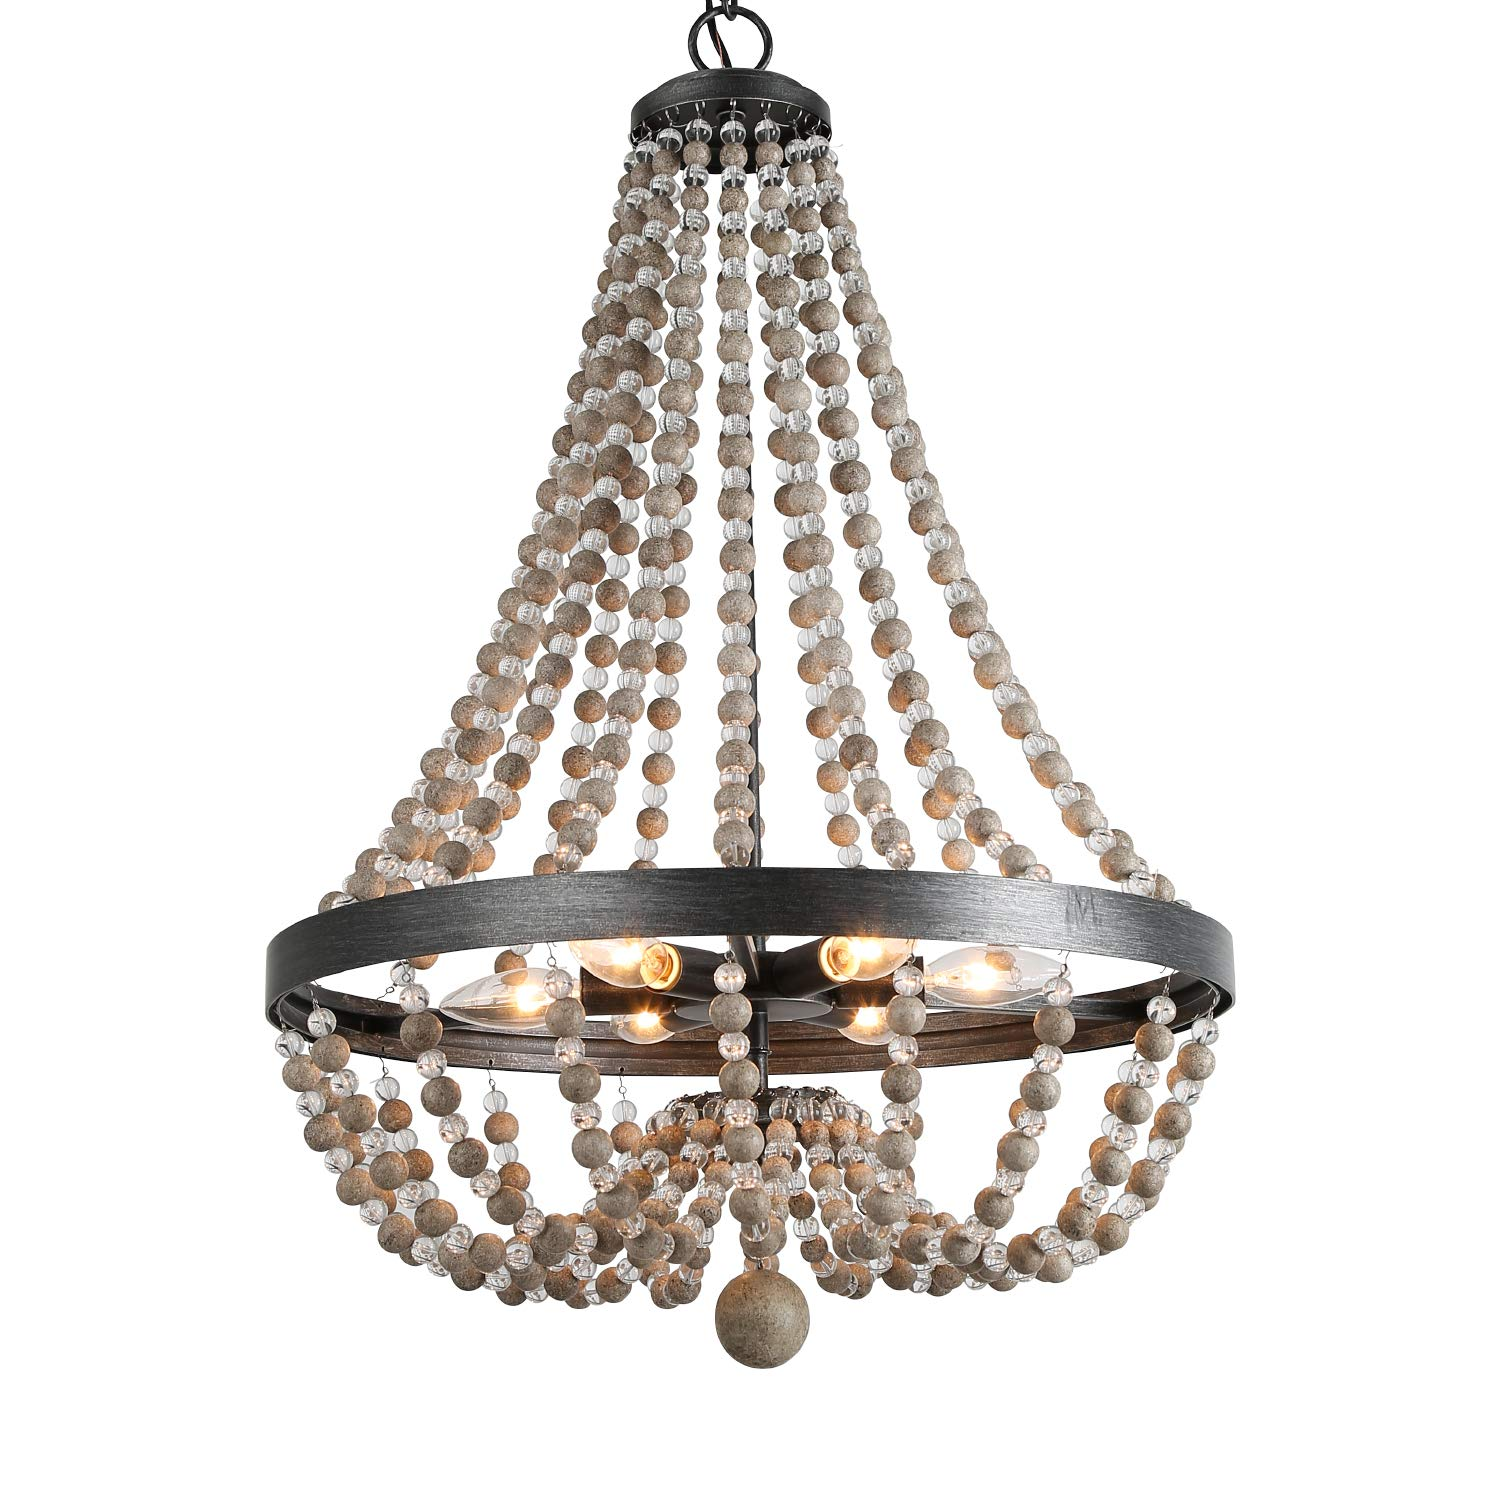 LALUZ 6-Light Wood Bead Empire Chandelier, Pendant Lighting Fixture for Kitchen Island, Natural Wood Beads, 28.3''H x 20.1''W